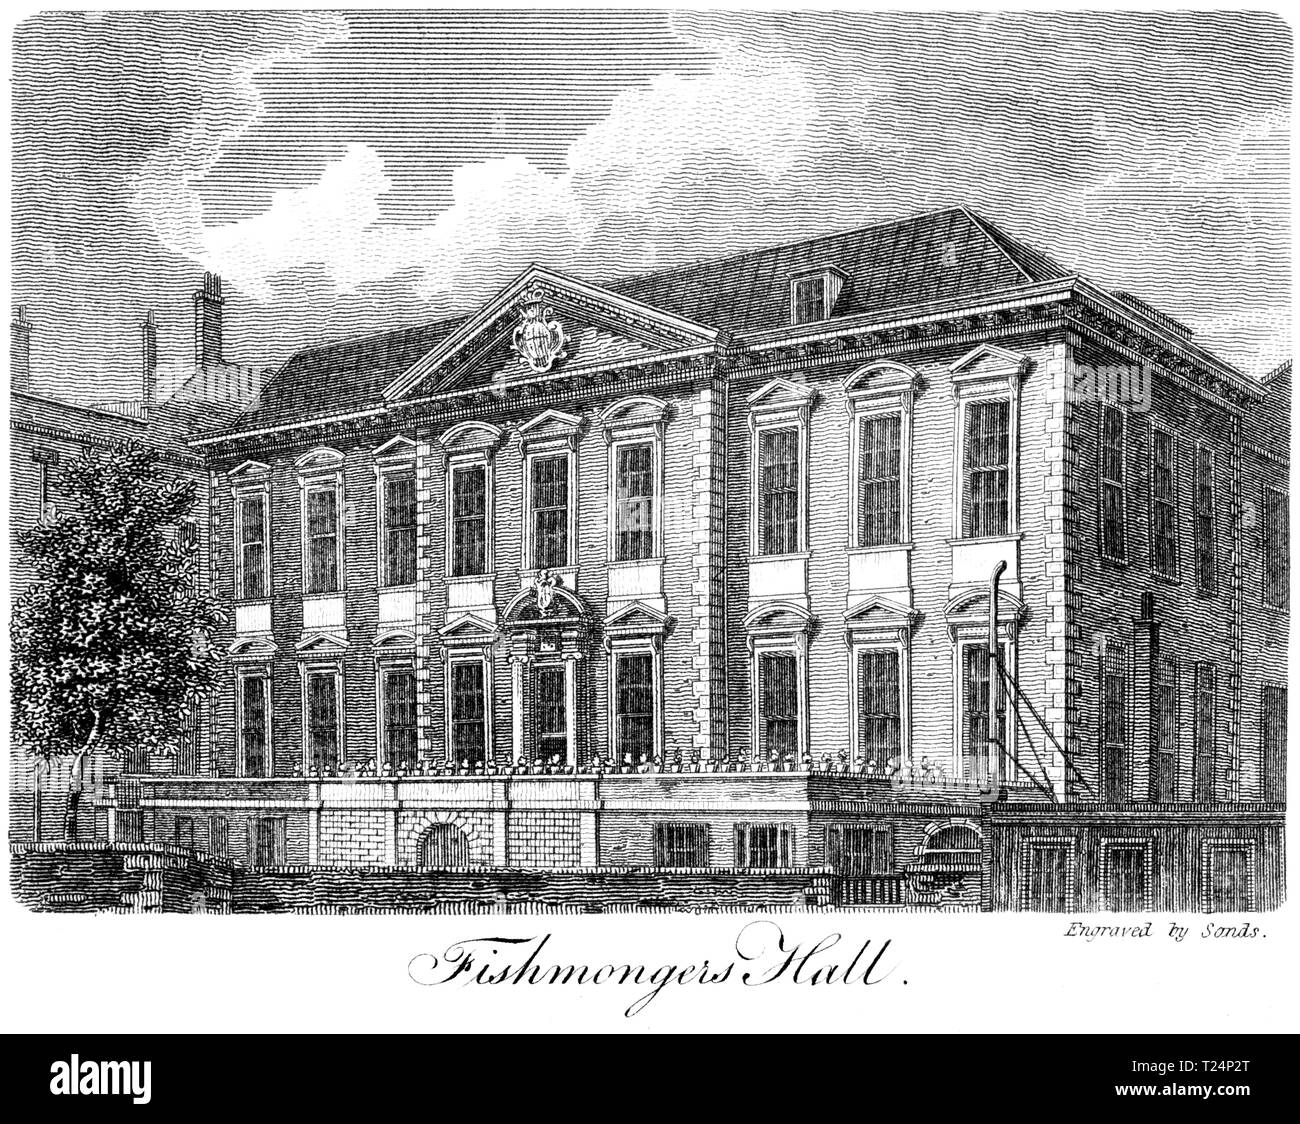 An engraving of Fishmongers Hall, London UK scanned at high resolution from a book published in 1814. Believed copyright free. - Stock Image